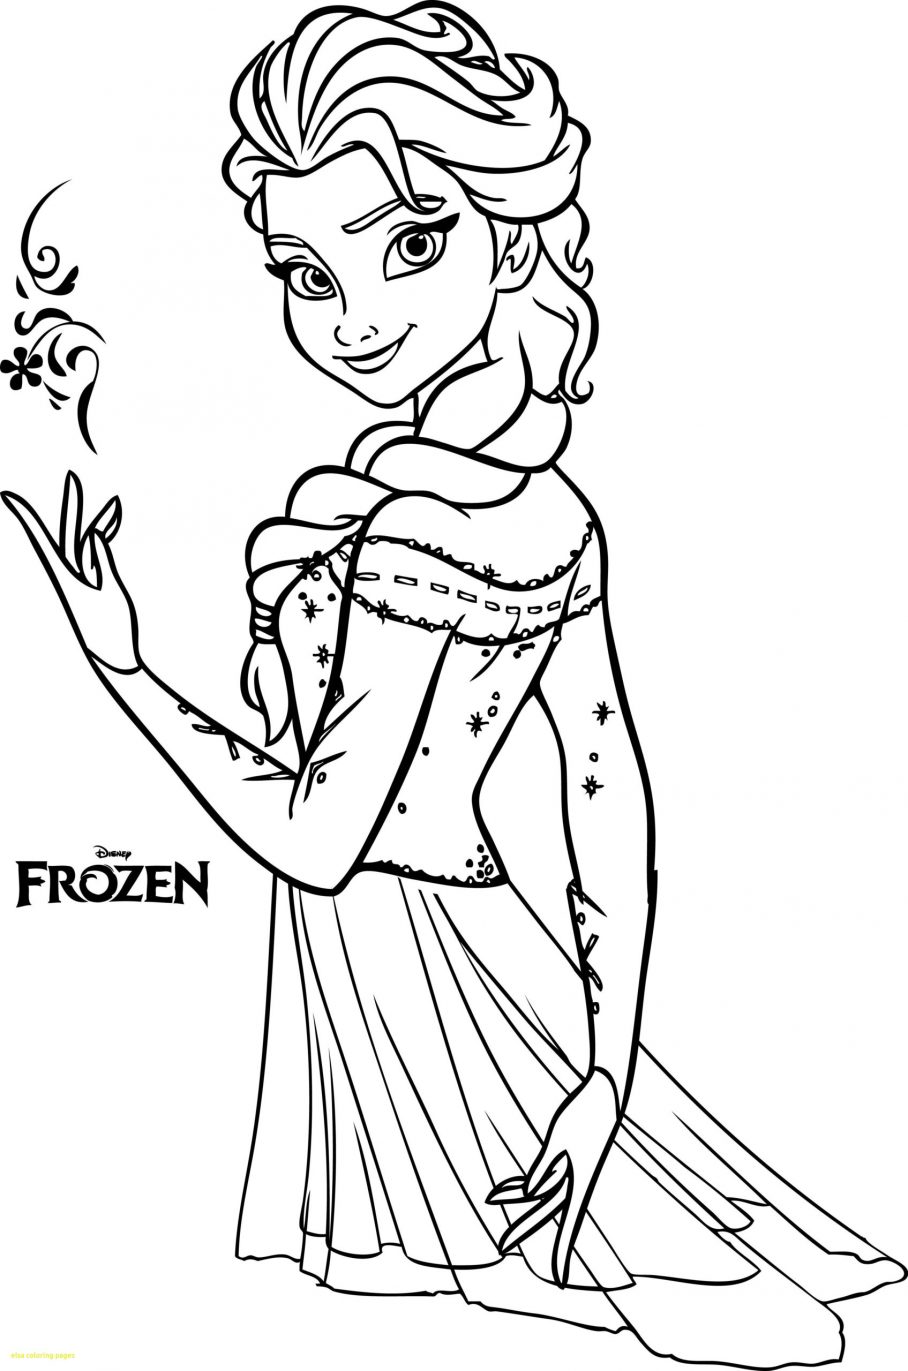 Disney Princess Coloring Sheets Printable Christmas Free Frozen Colouring Book All Pag Disney Princess Coloring Pages Elsa Coloring Pages Frozen Coloring Pages